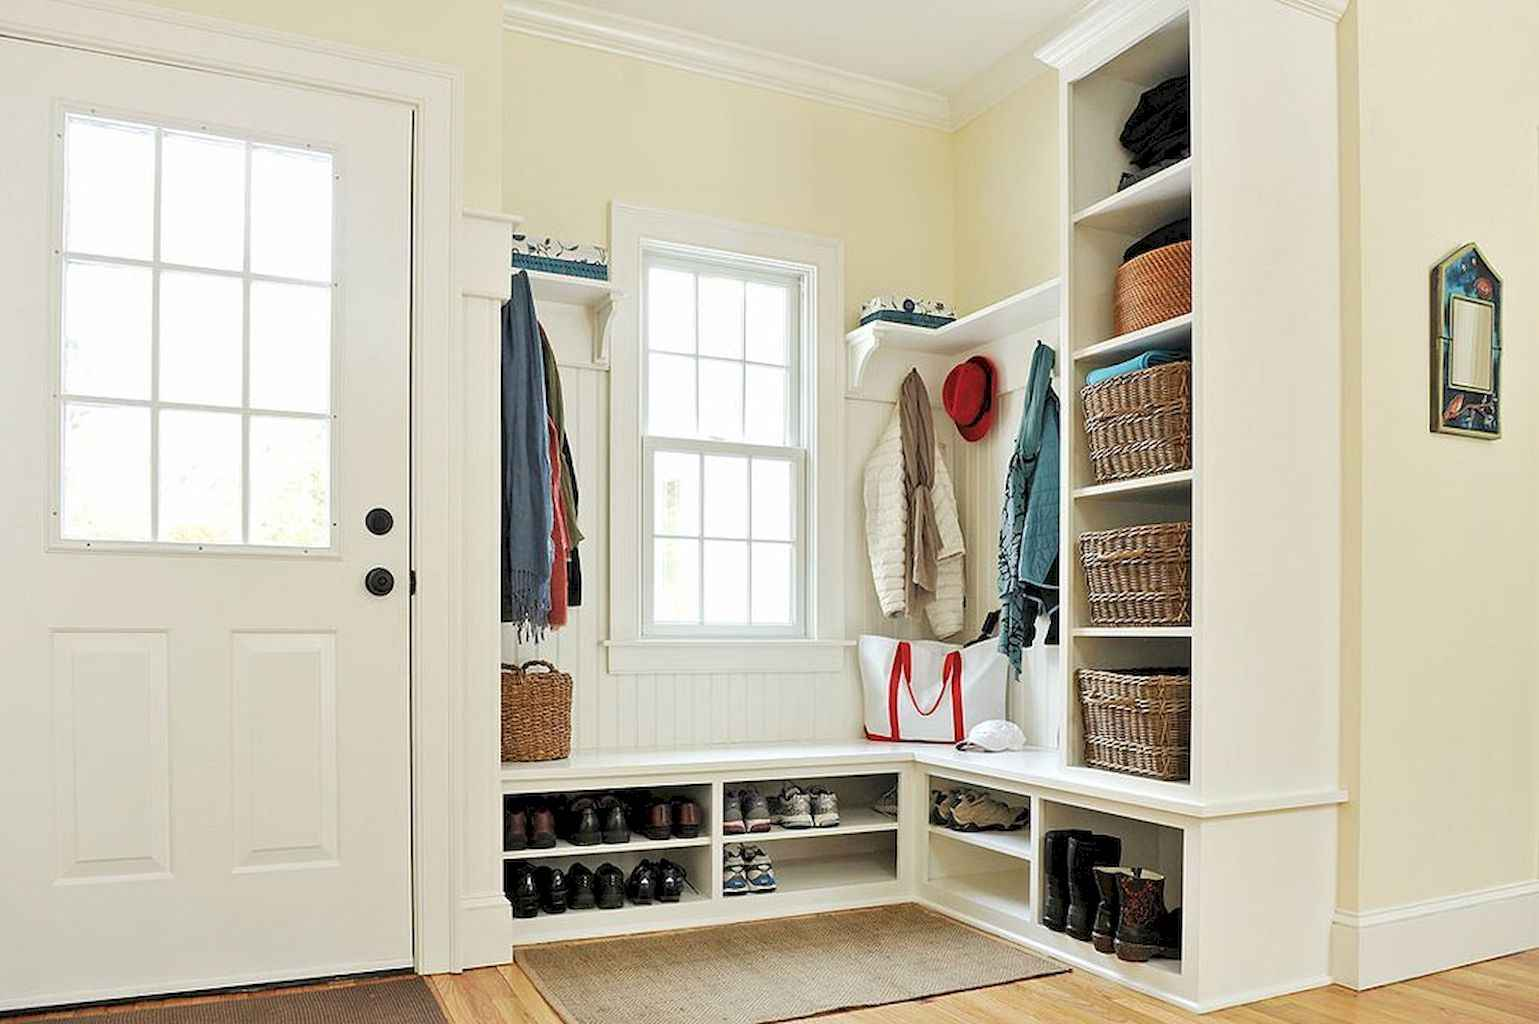 65 Cool Mudroom Design Ideas and Remodel (57)